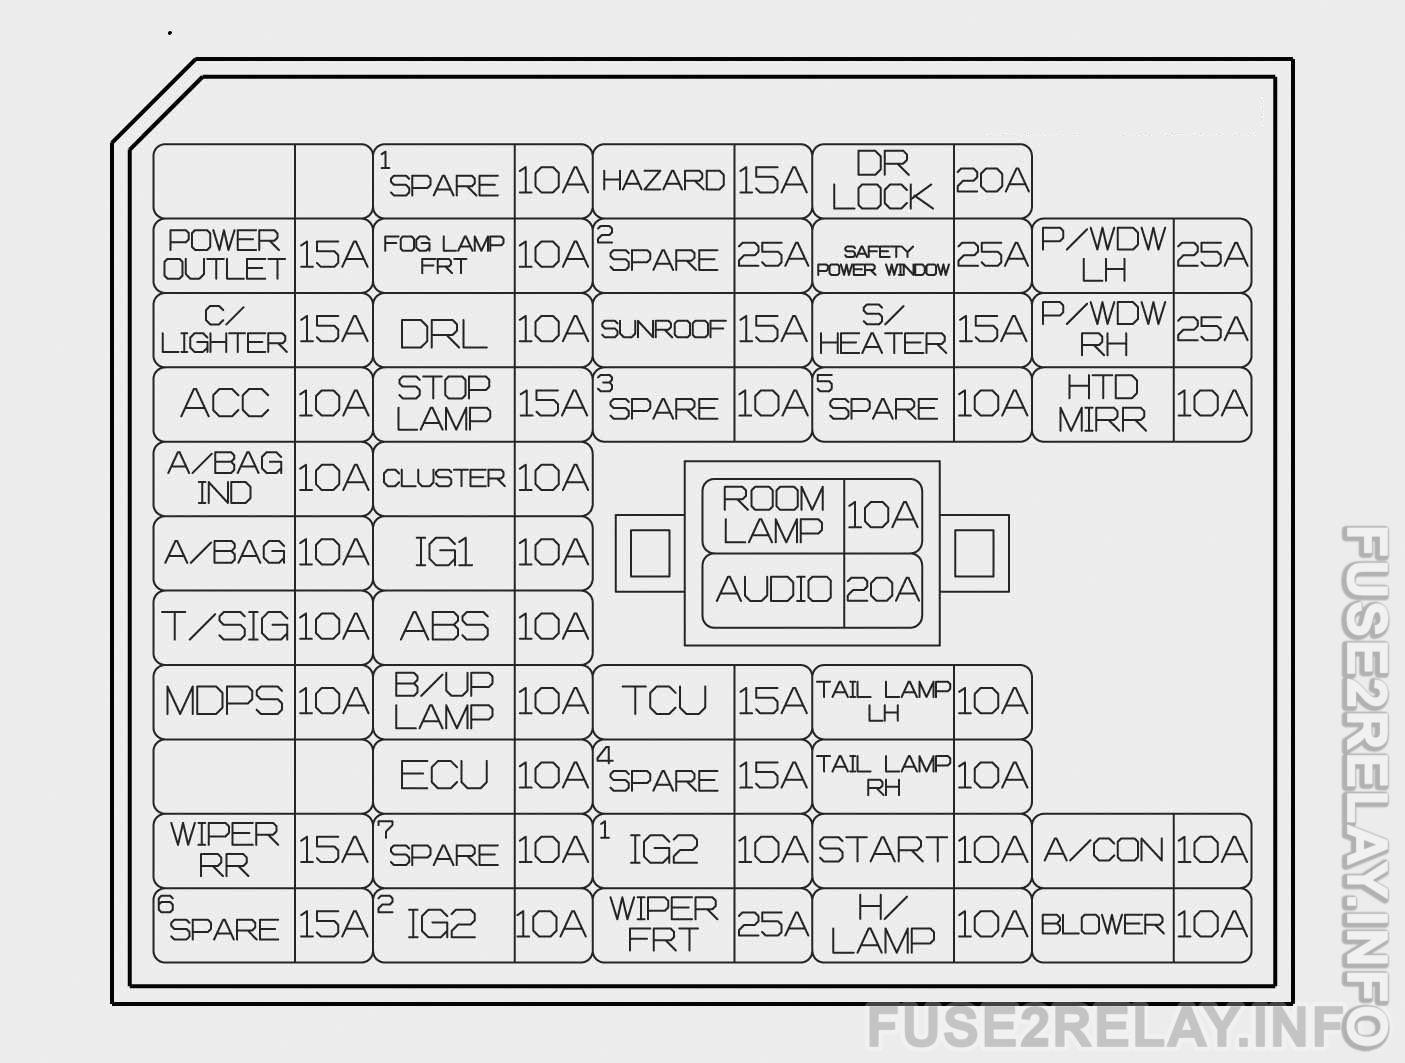 Hyundai Sonata (2015) fuse relay box diagram